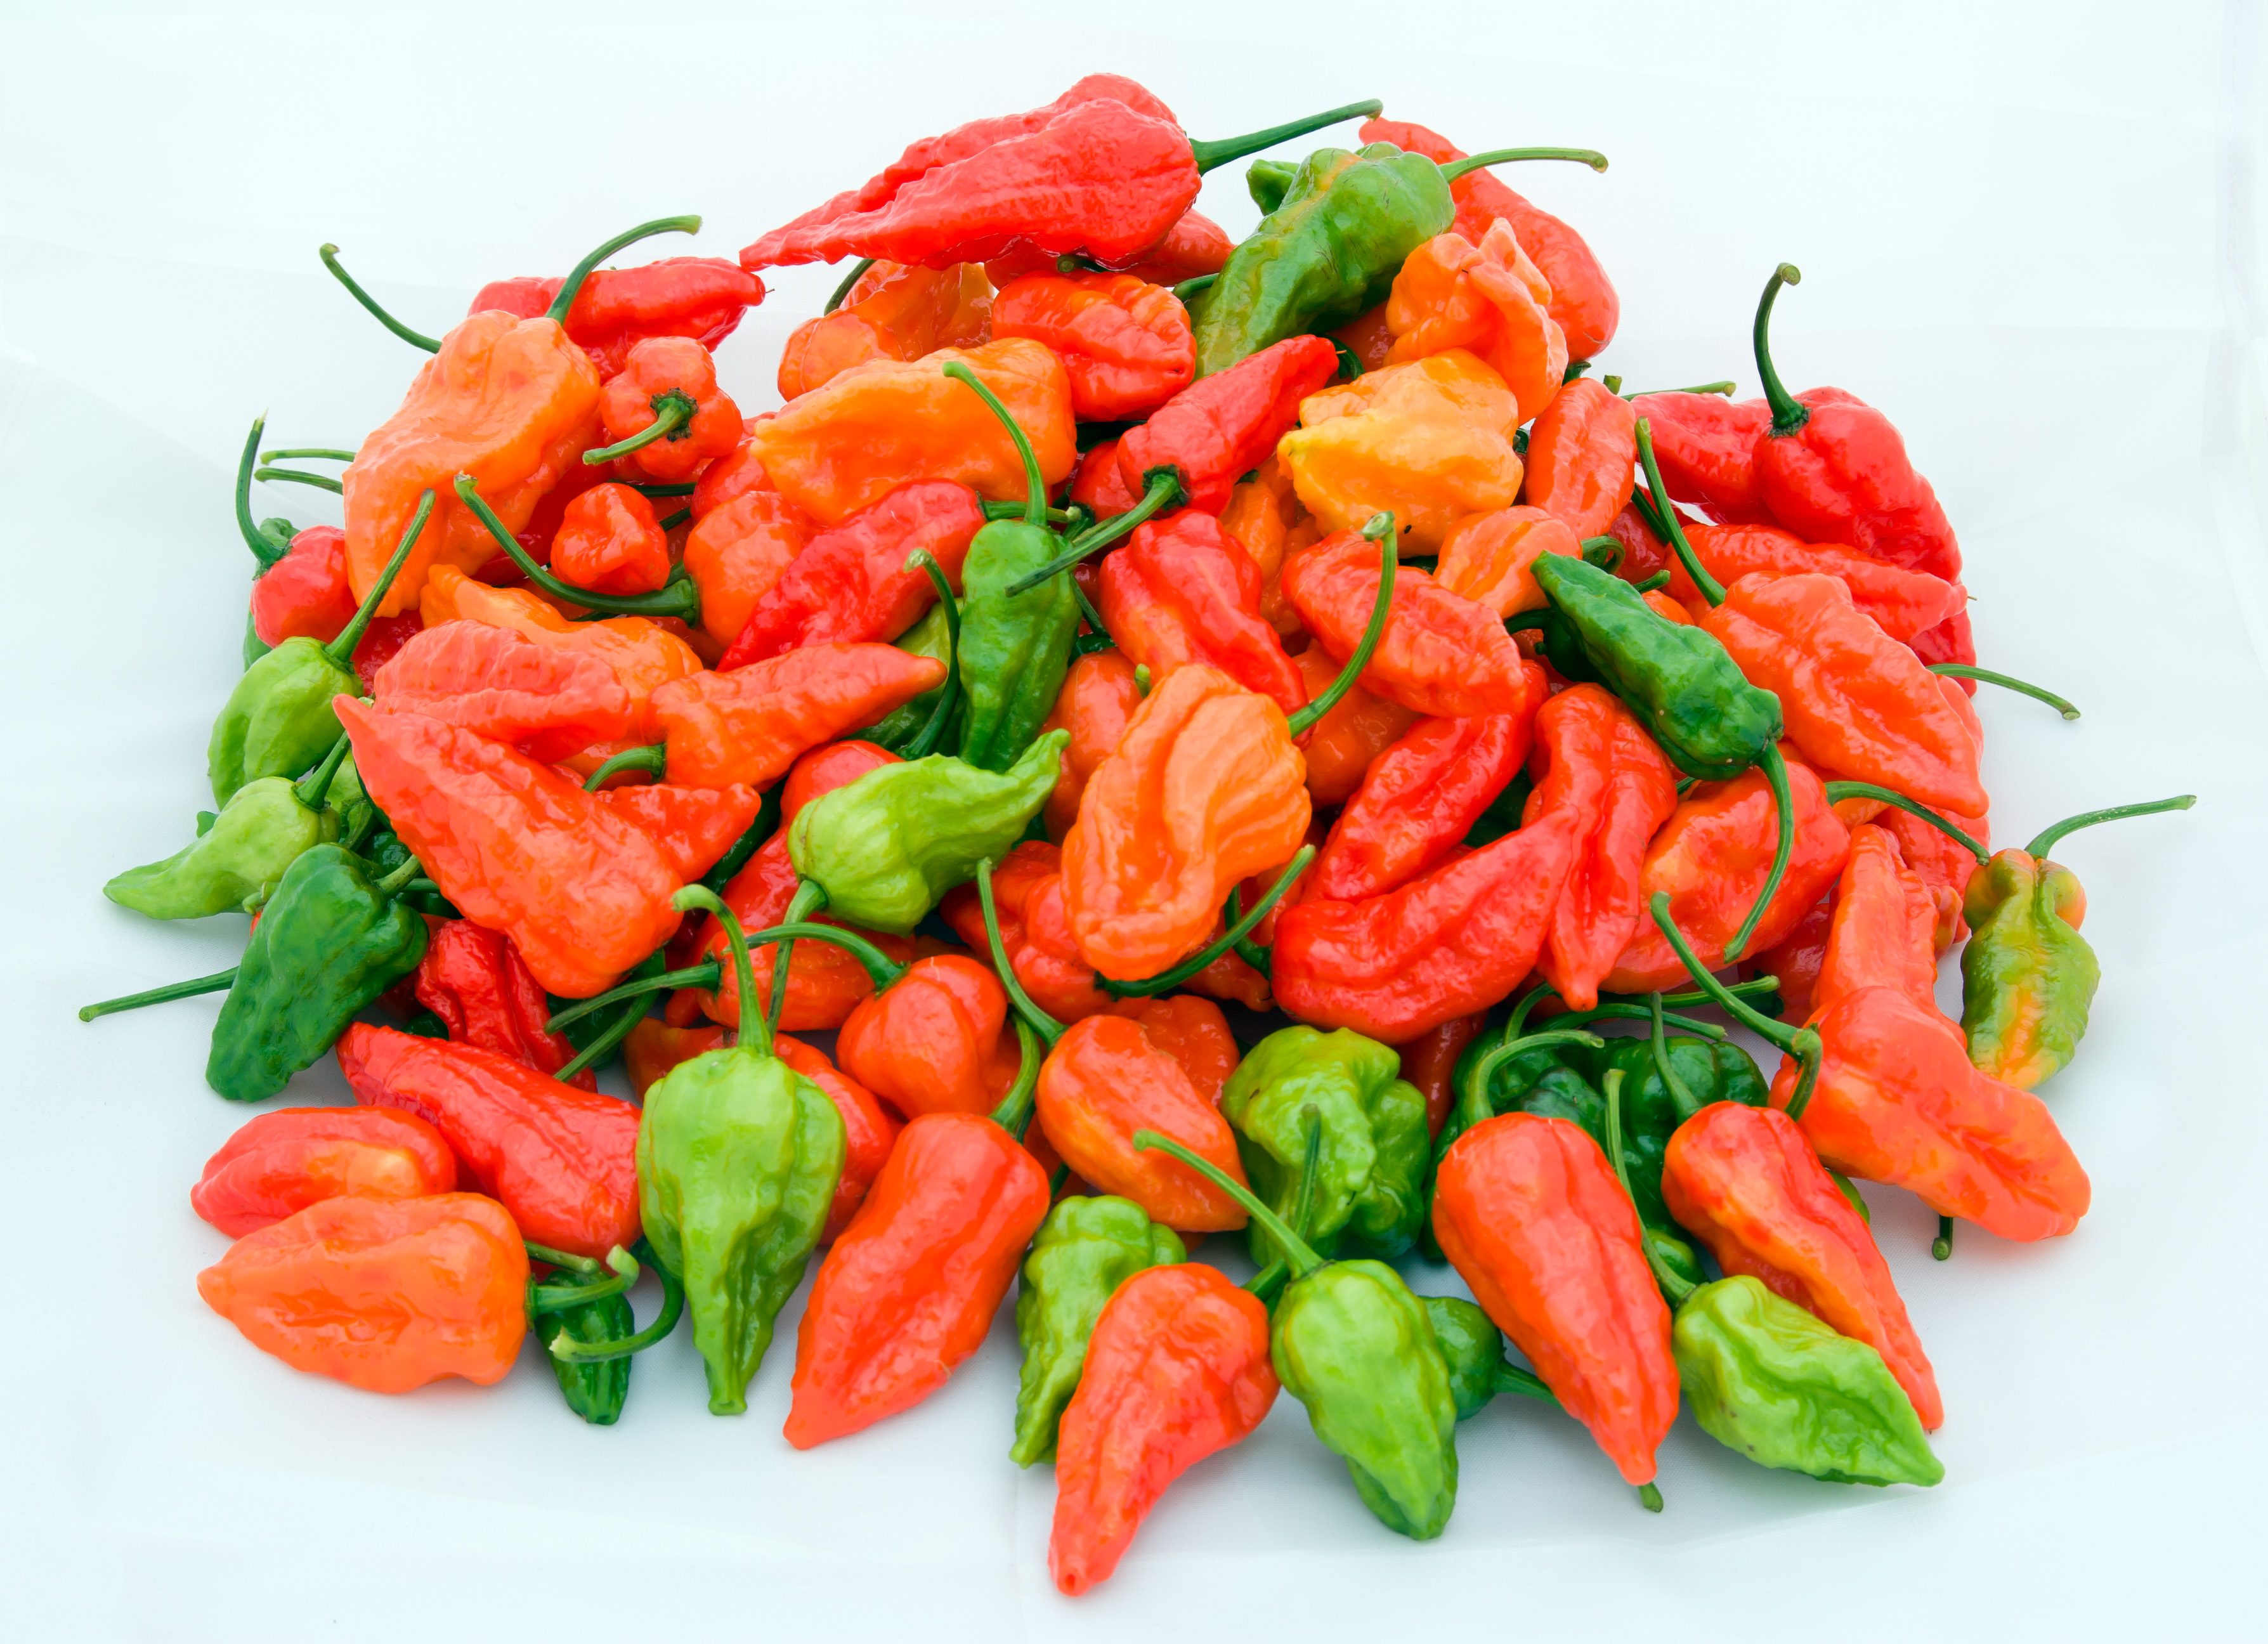 1000 Images About Hot On Pinterest Chile Chili And